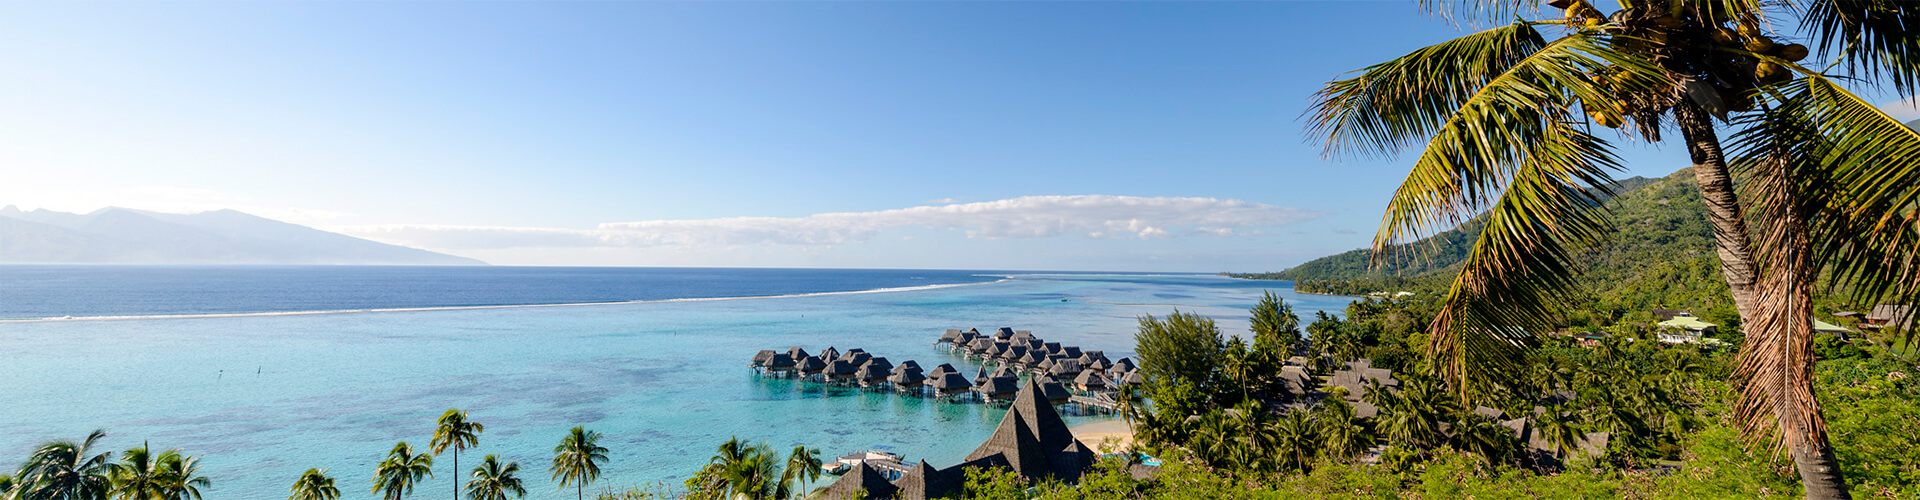 Scenic view of Tahiti with Overwater Bungalows